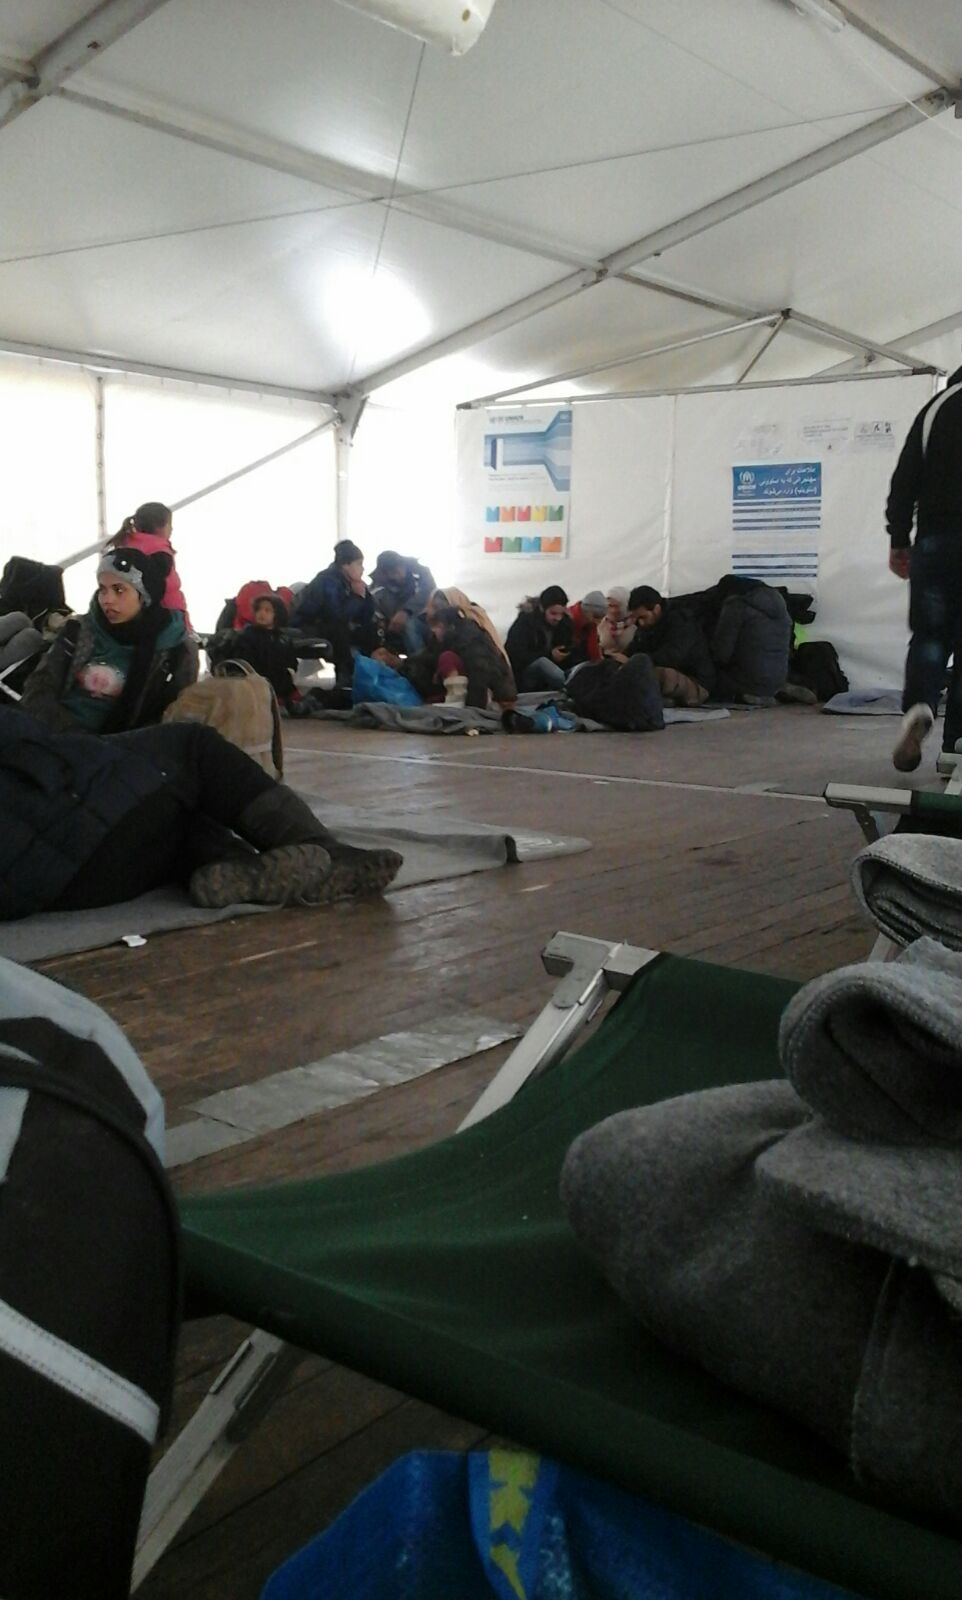 Resting area at refugee camp. Photo taken by Abdul.